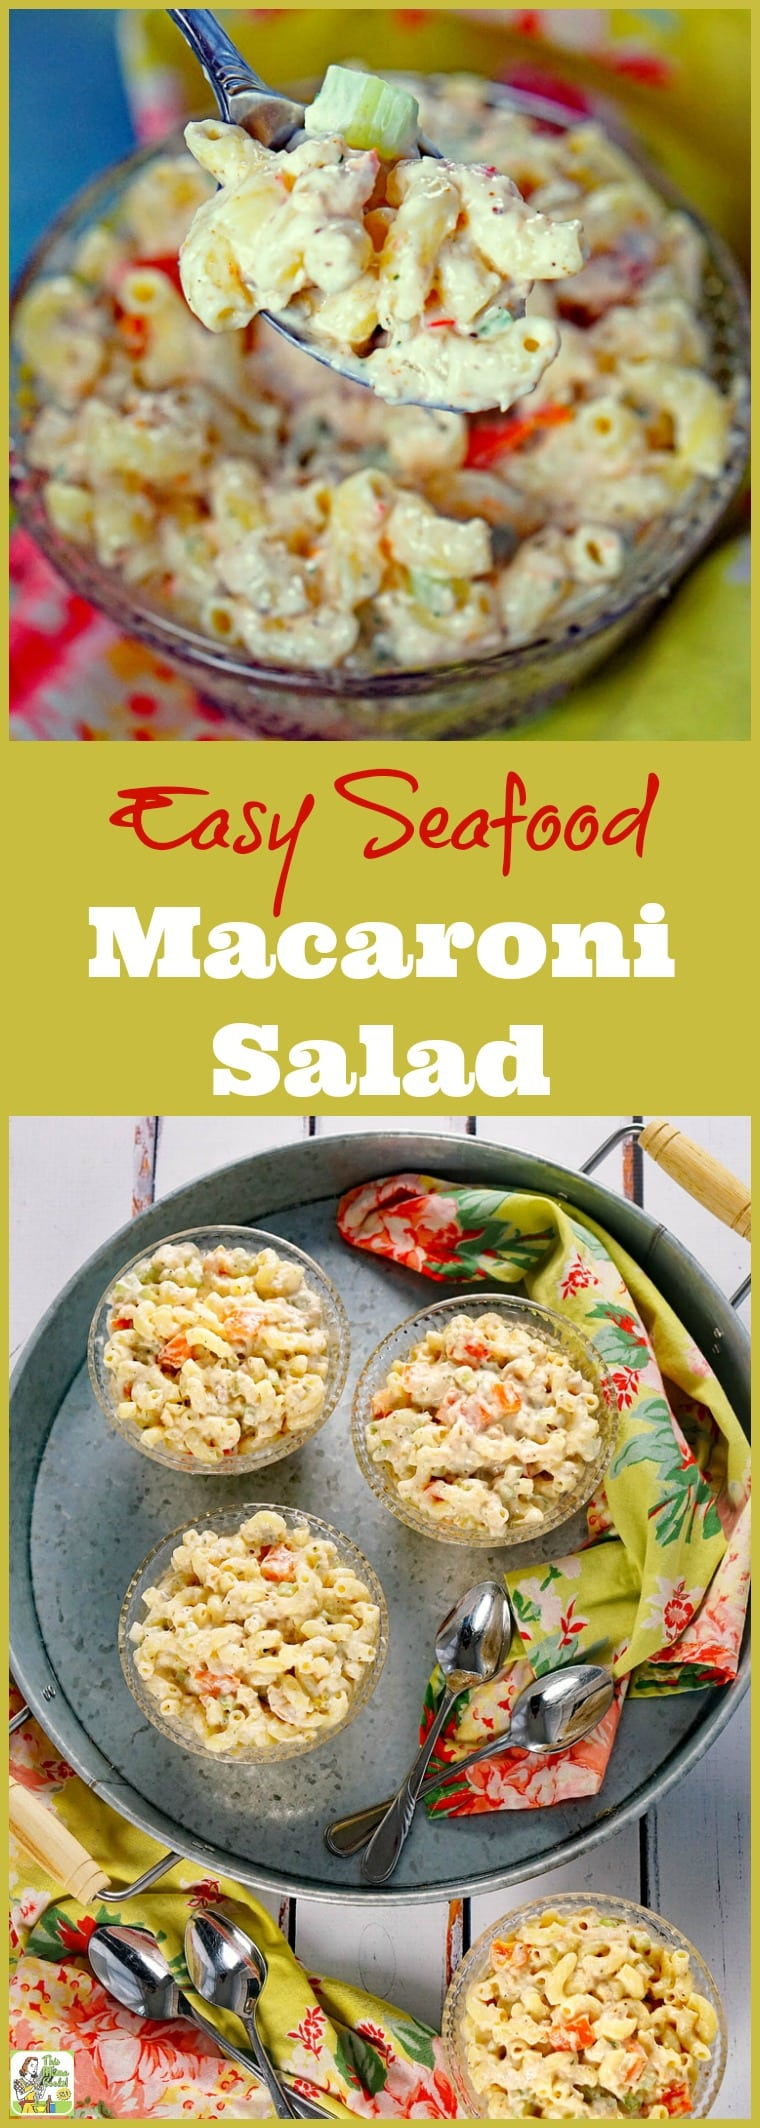 Need the perfect Easy Seafood Macaroni Salad for your brunch or barbecue party? Click to get this easy pasta salad recipe contains baby shrimp, bell peppers, dill, seafood seasoning blend, and lite mayonnaise. It can be made with gluten free or whole wheat macaroni, too!